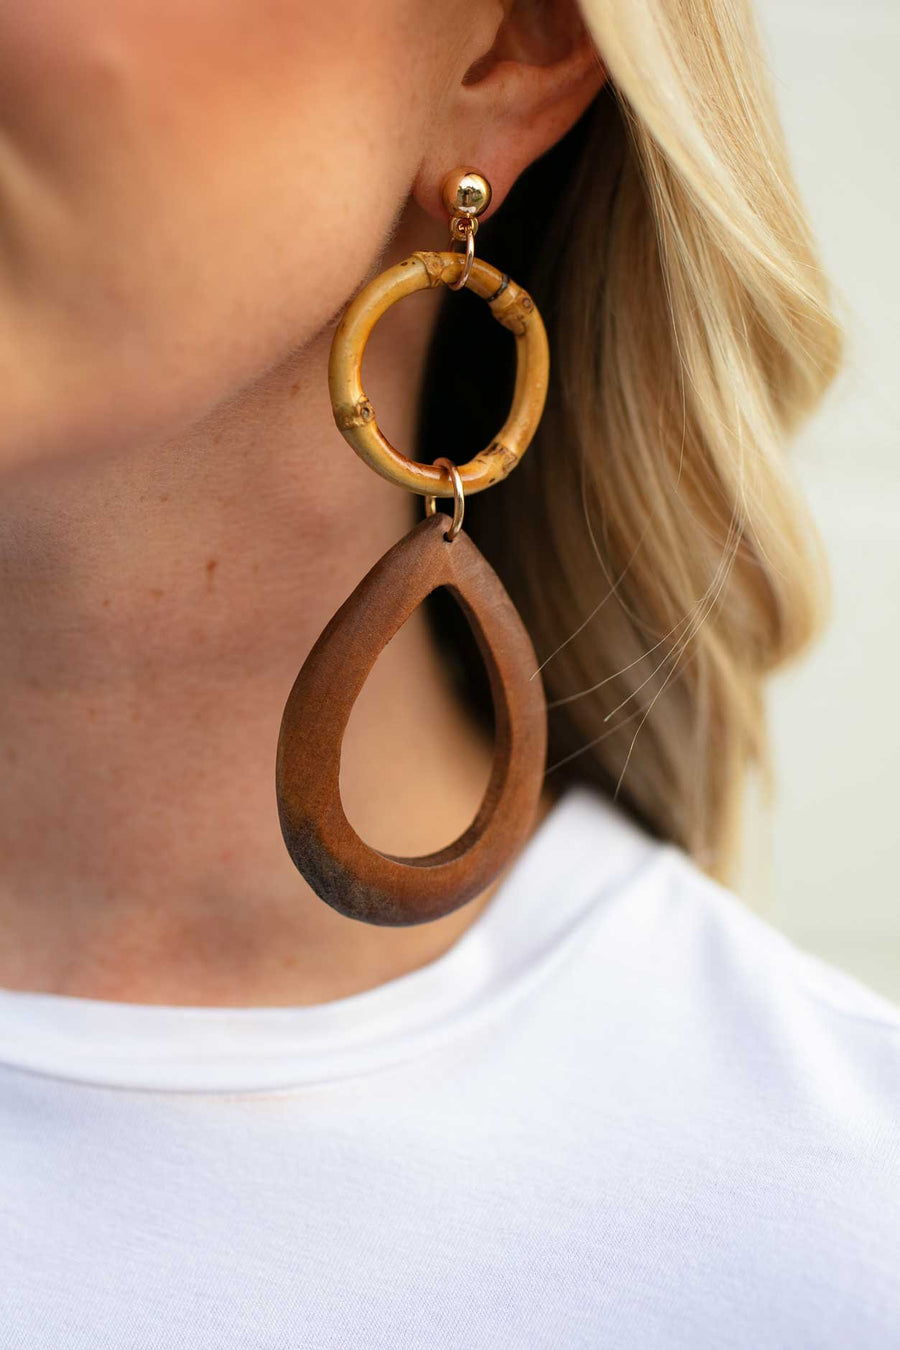 Accessories Have It All Teardrop Wooden Earrings - Lotus Boutique